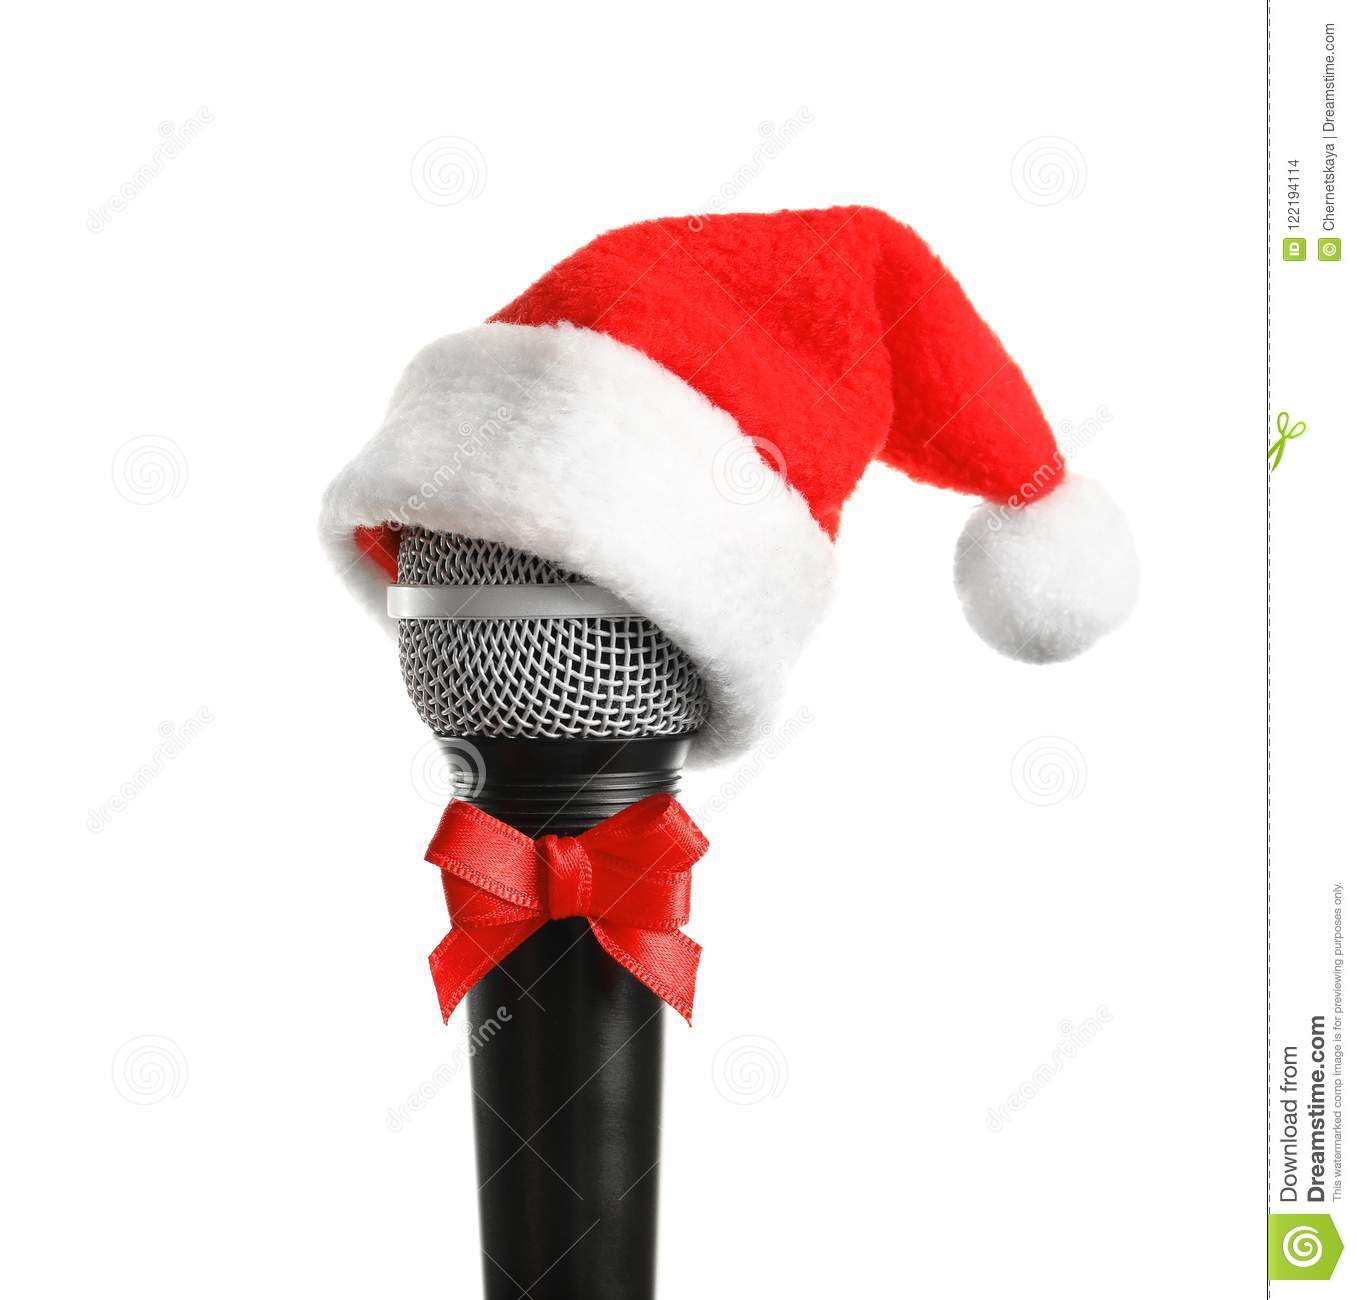 daaafc8ab2005 Microphone with Santa hat and bow on white background. Christmas music  concept